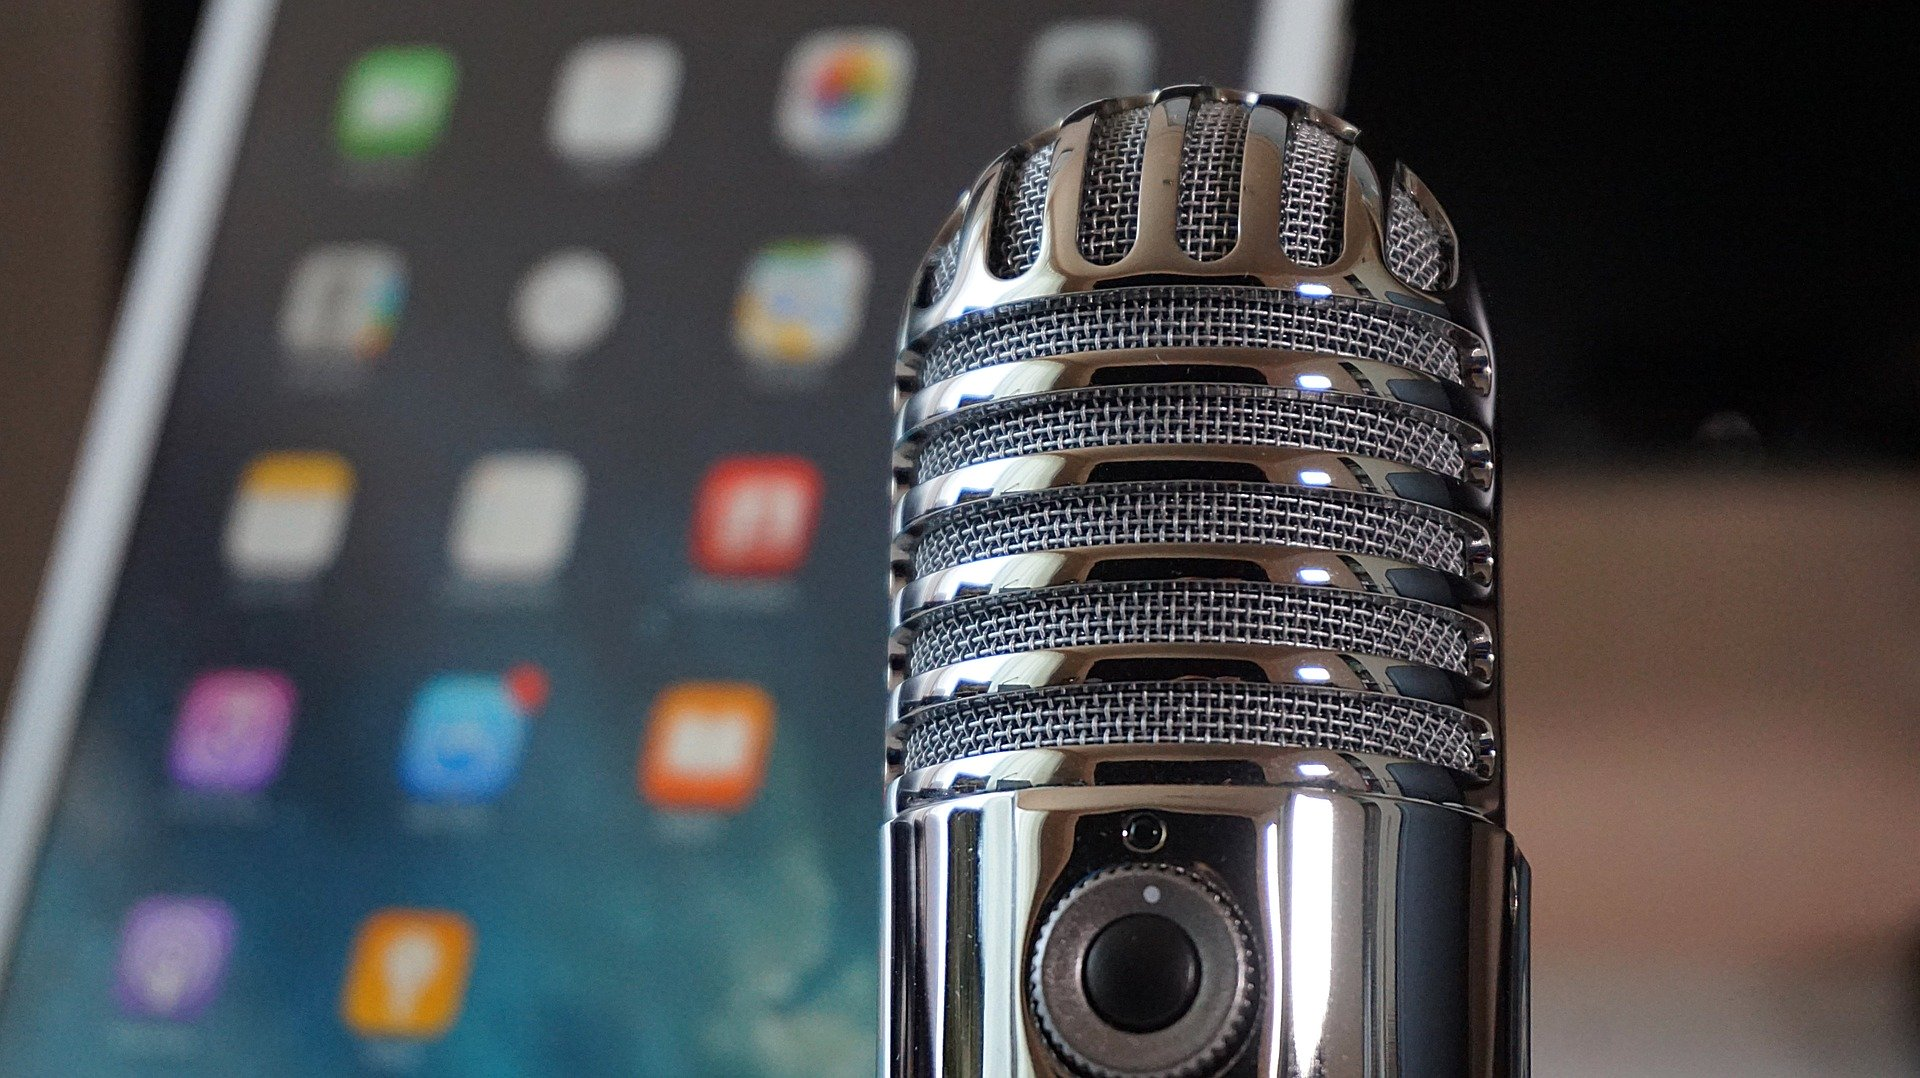 microphone-2469295_1920